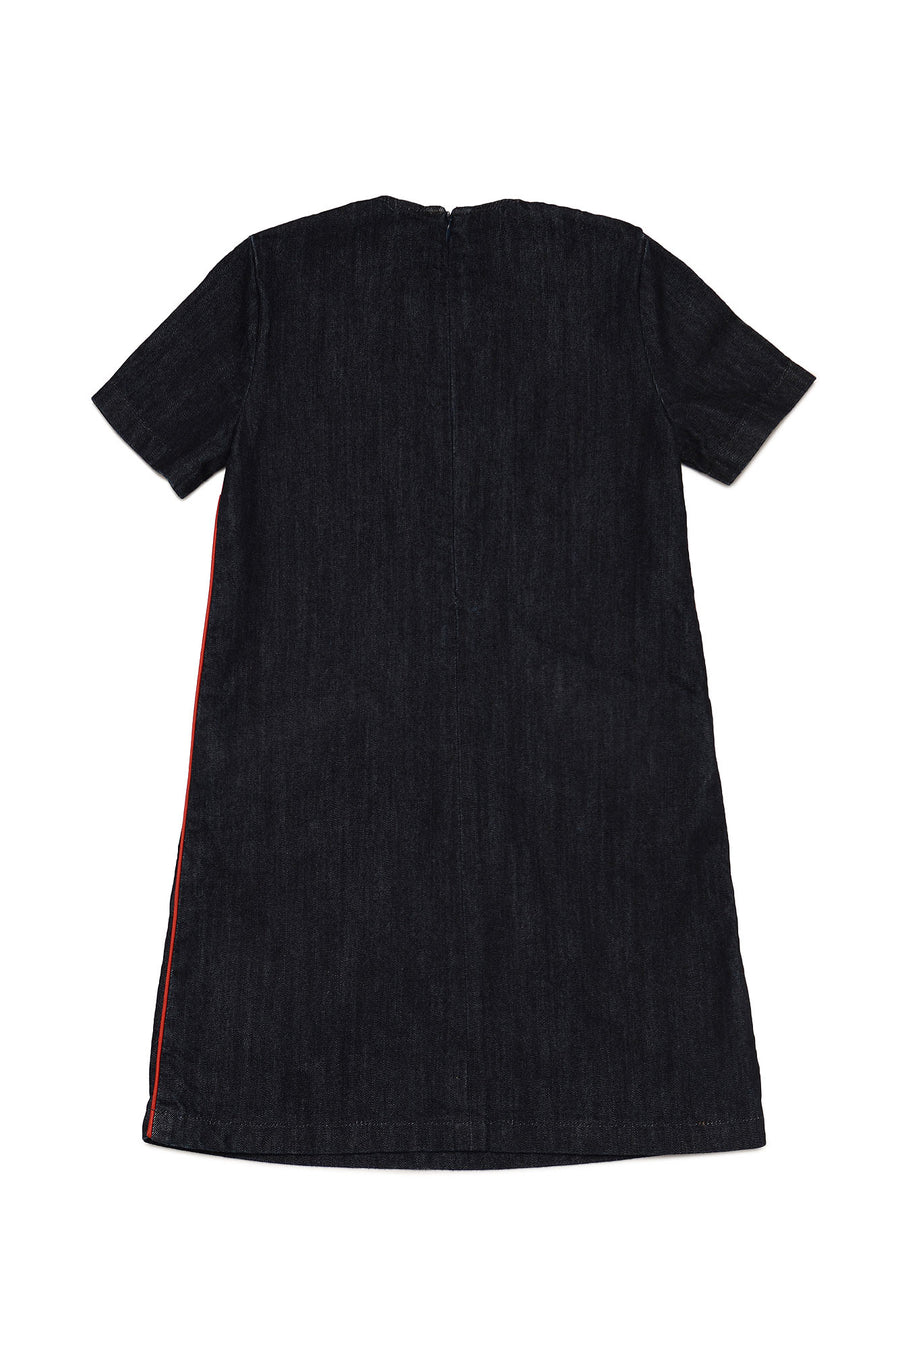 Zipper Pockets Dress by Marni